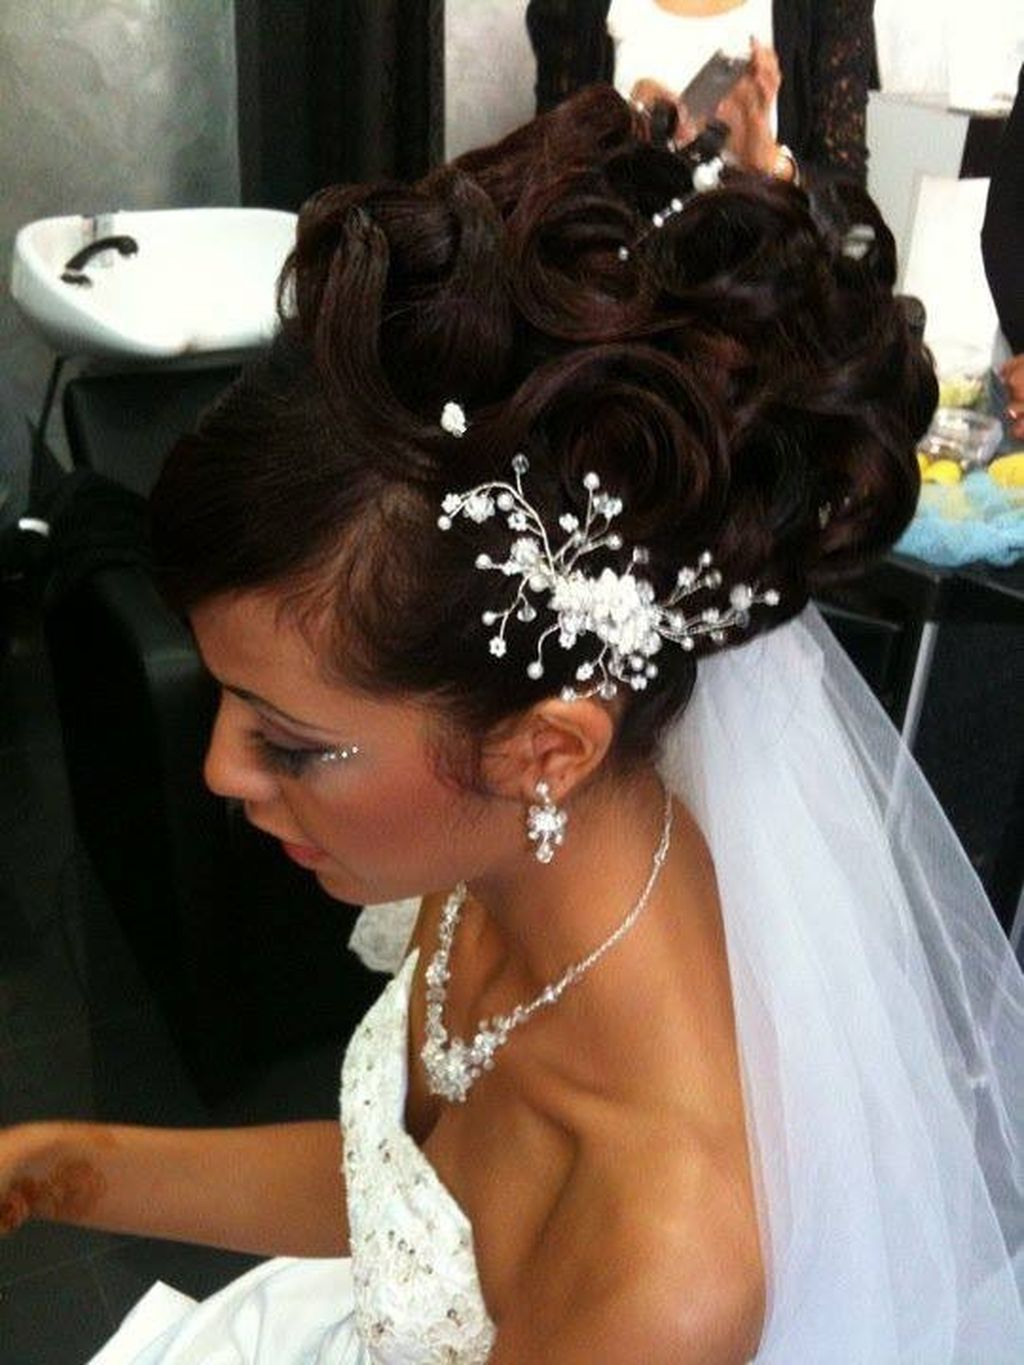 75 Stunning African American Wedding Hairstyles Ideas for Memorable ...